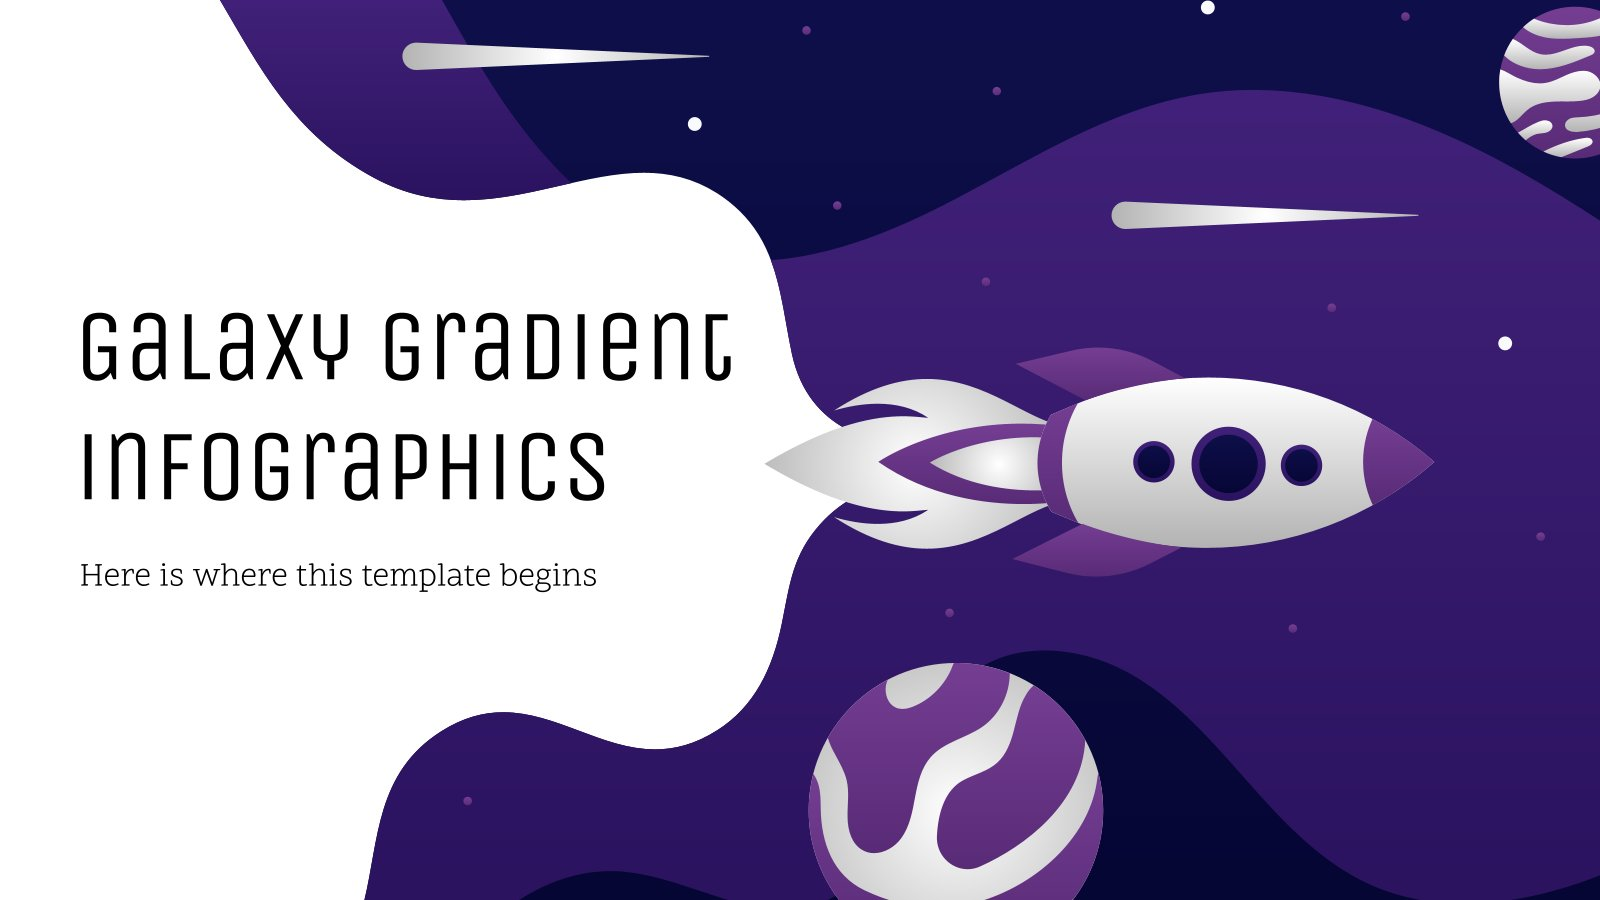 Galaxy Gradient Infographics presentation template